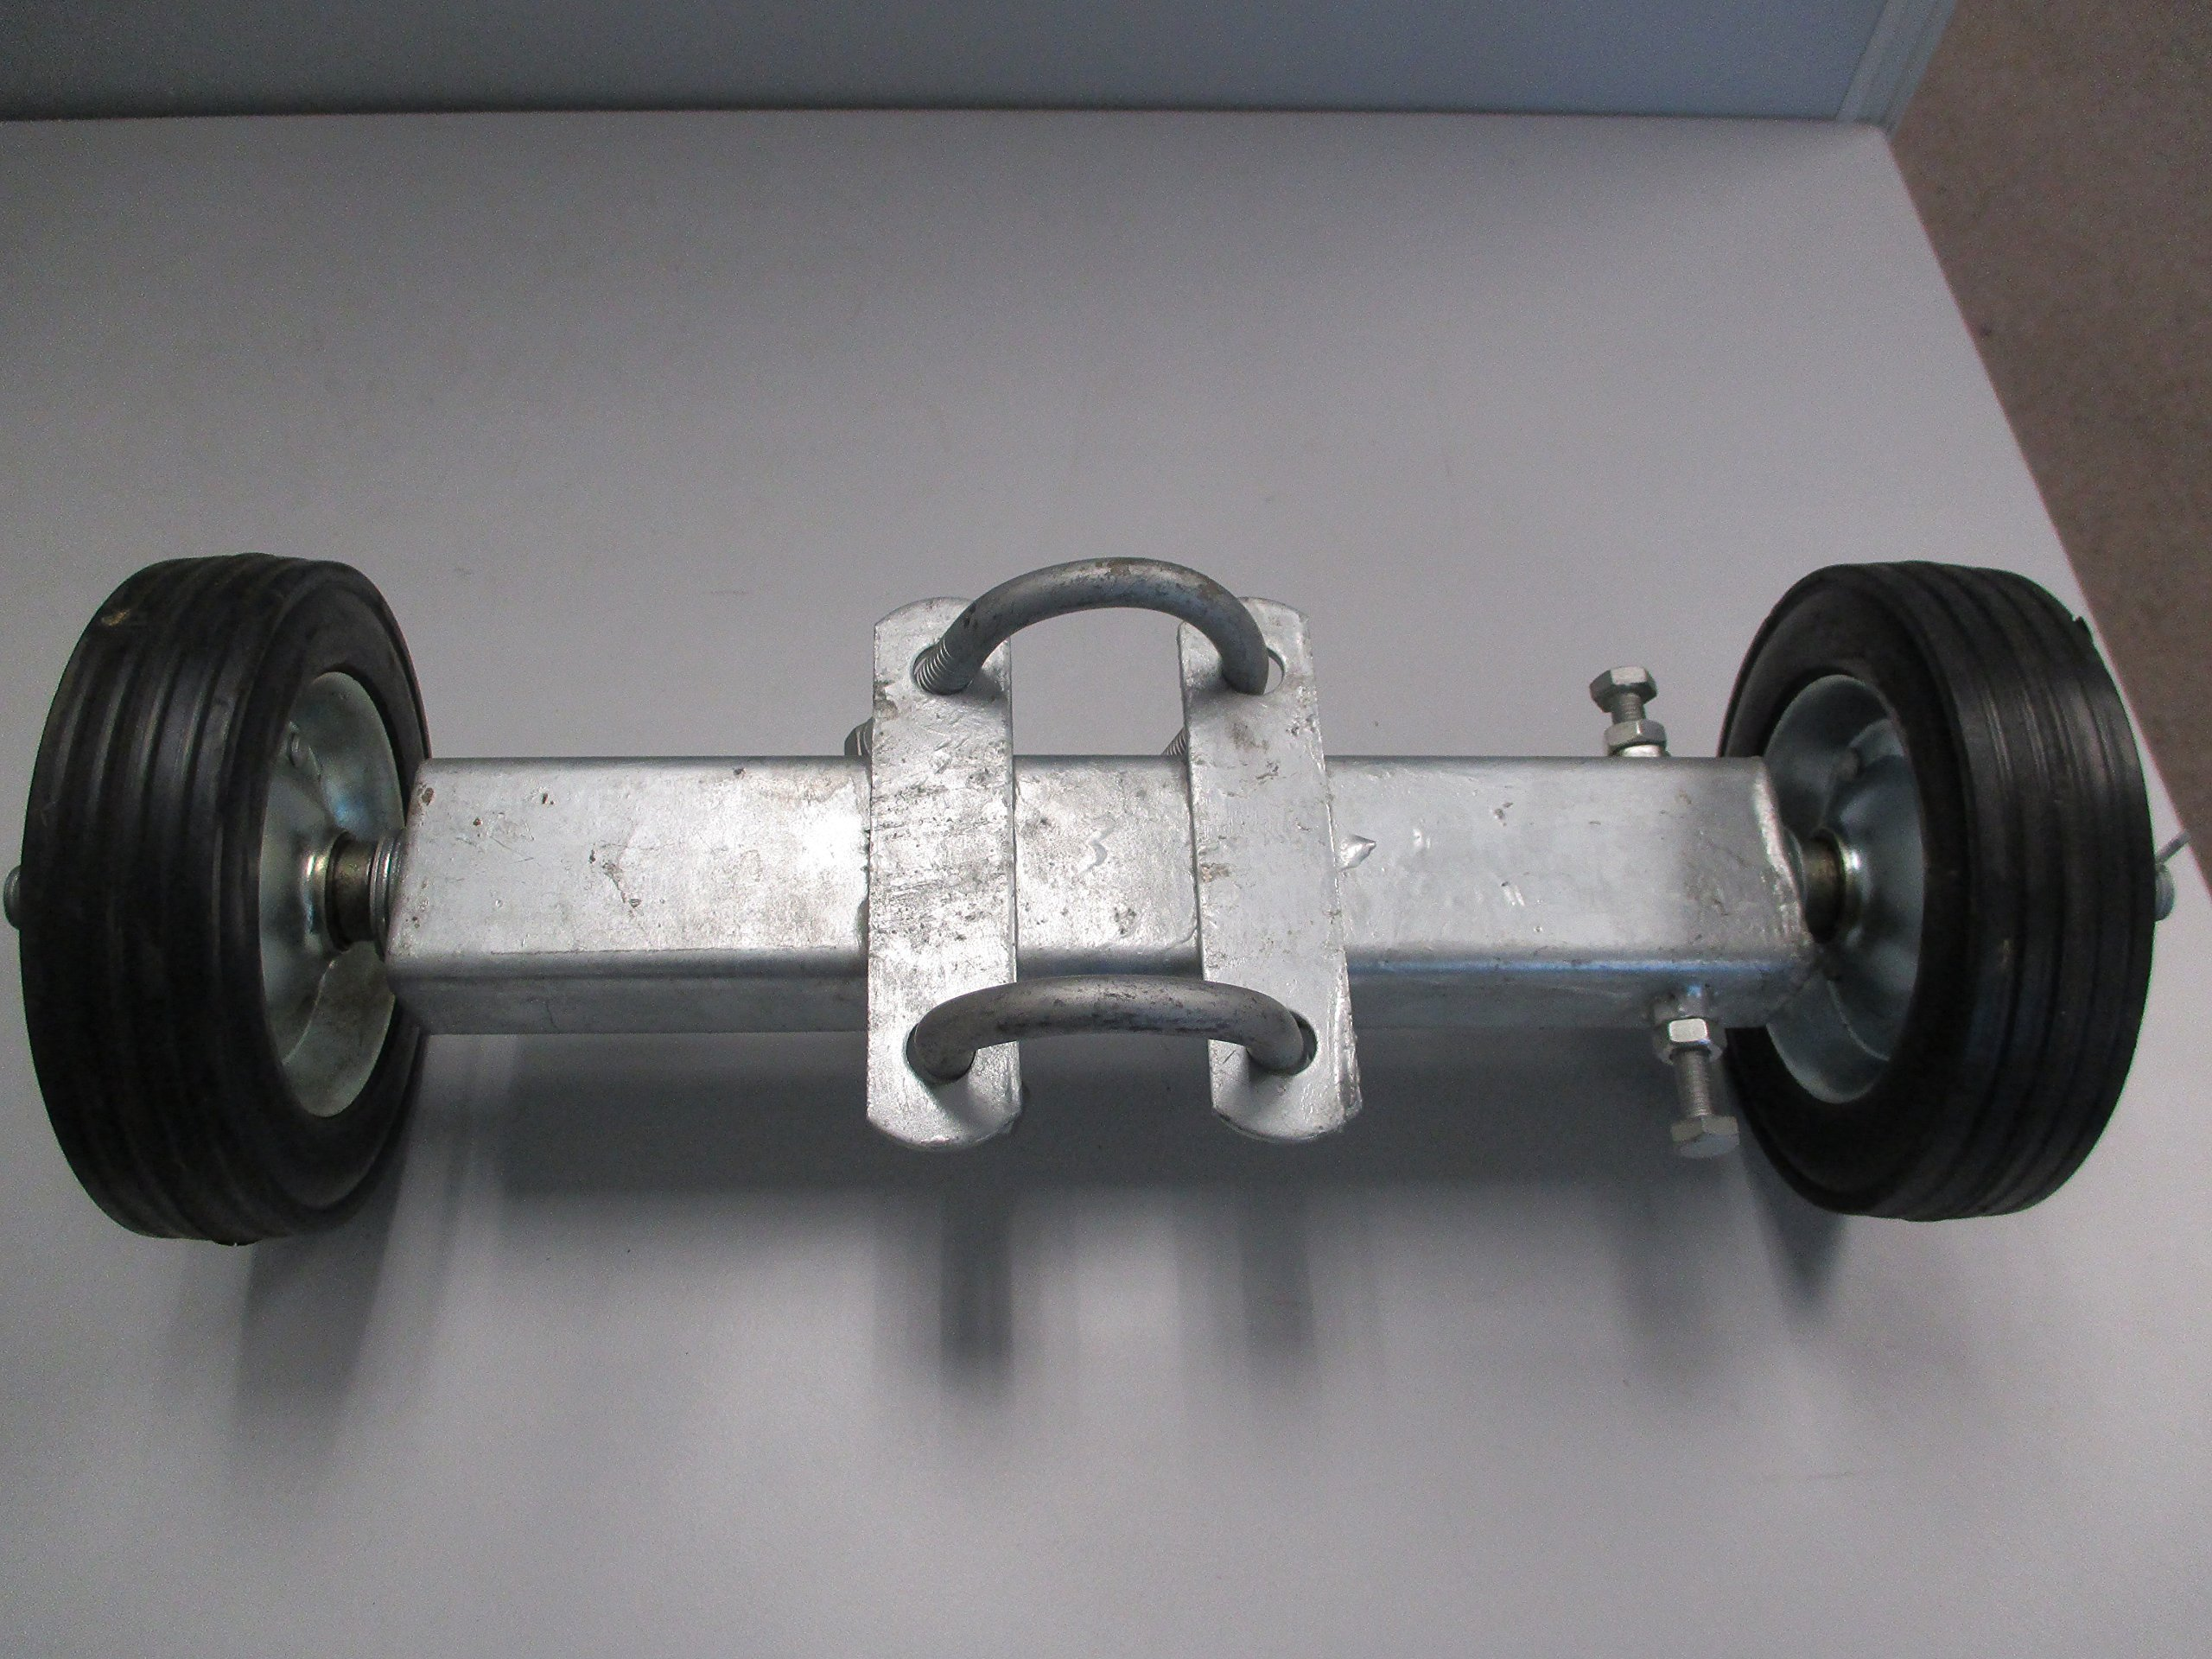 6'' ROLLING GATE CARRIER WHEELS: for chain link fence rolling gates - rut runner